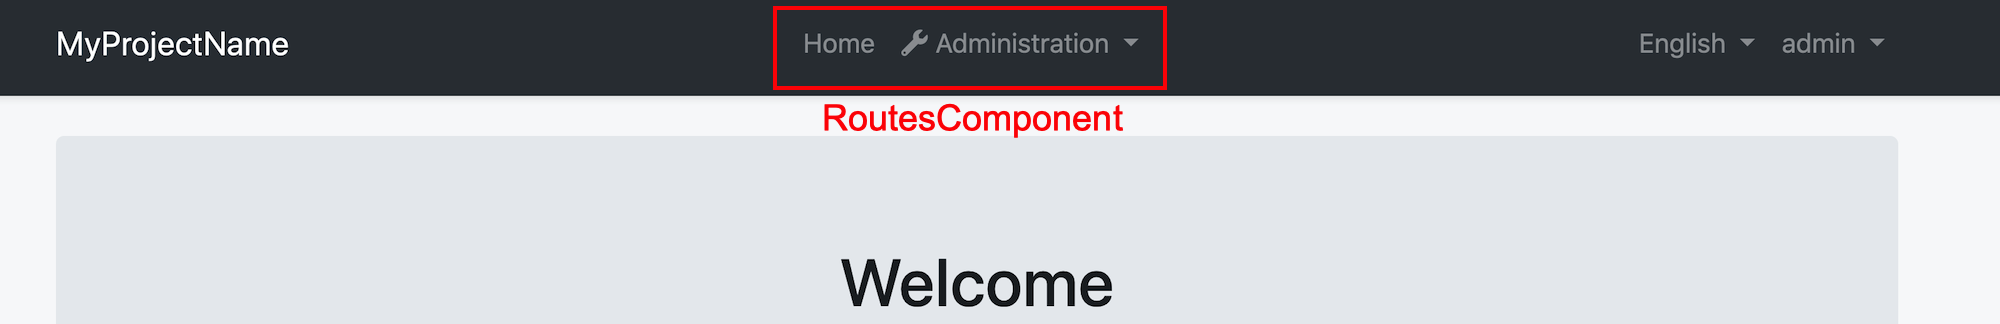 RoutesComponent